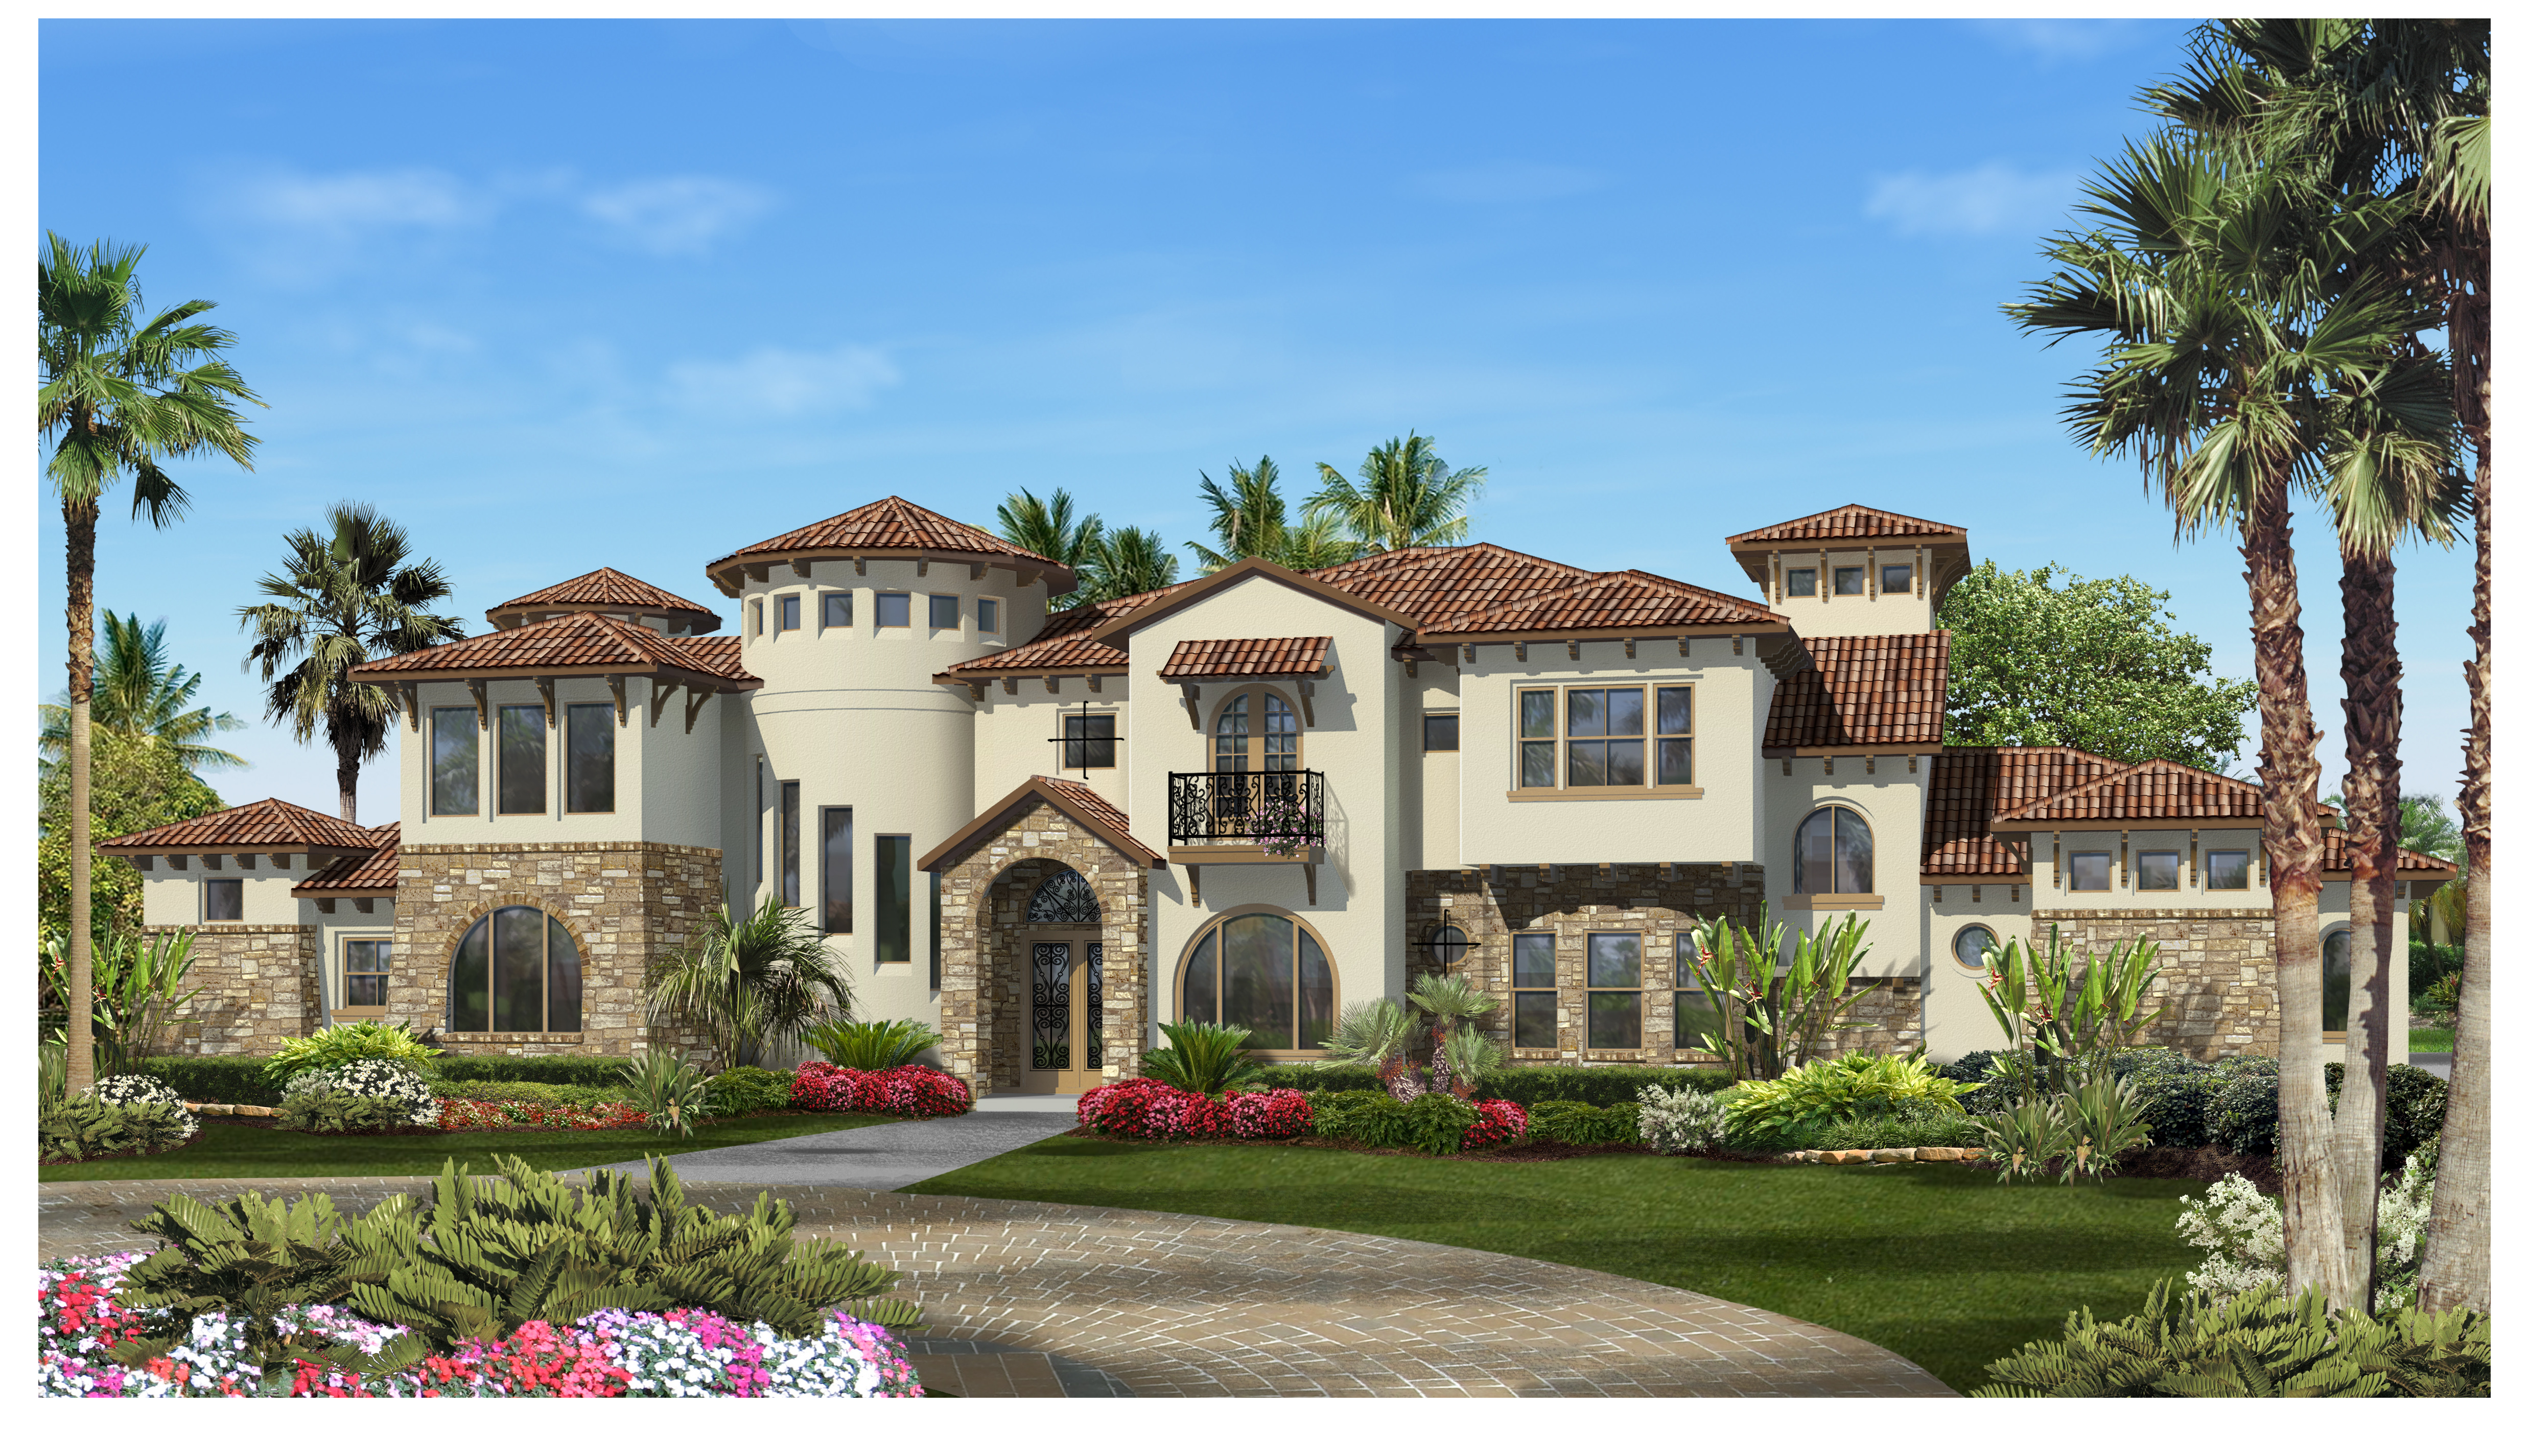 6 159 sq ft house plan 5 bed 4 2 half bath 2 story for Lago vista home builders